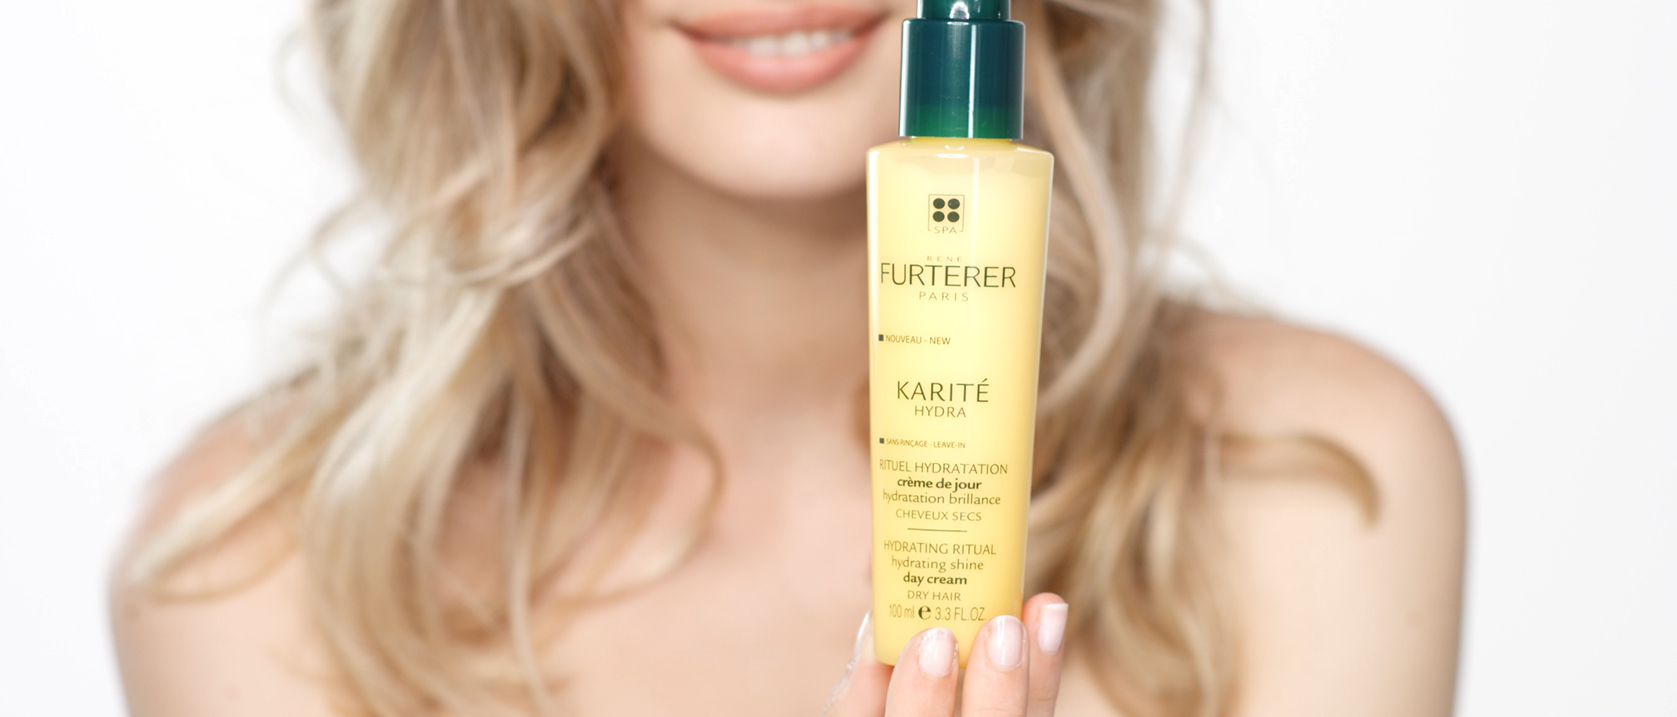 KARITE HYDRA Hydrating shine day cream application video | René Furterer